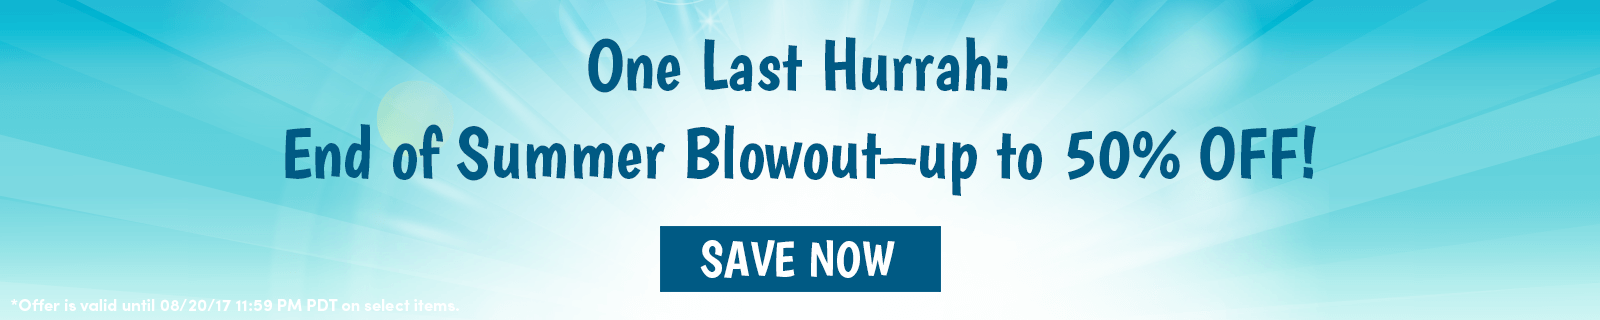 One last hurrah: End of summer blowout - up to 50% off!